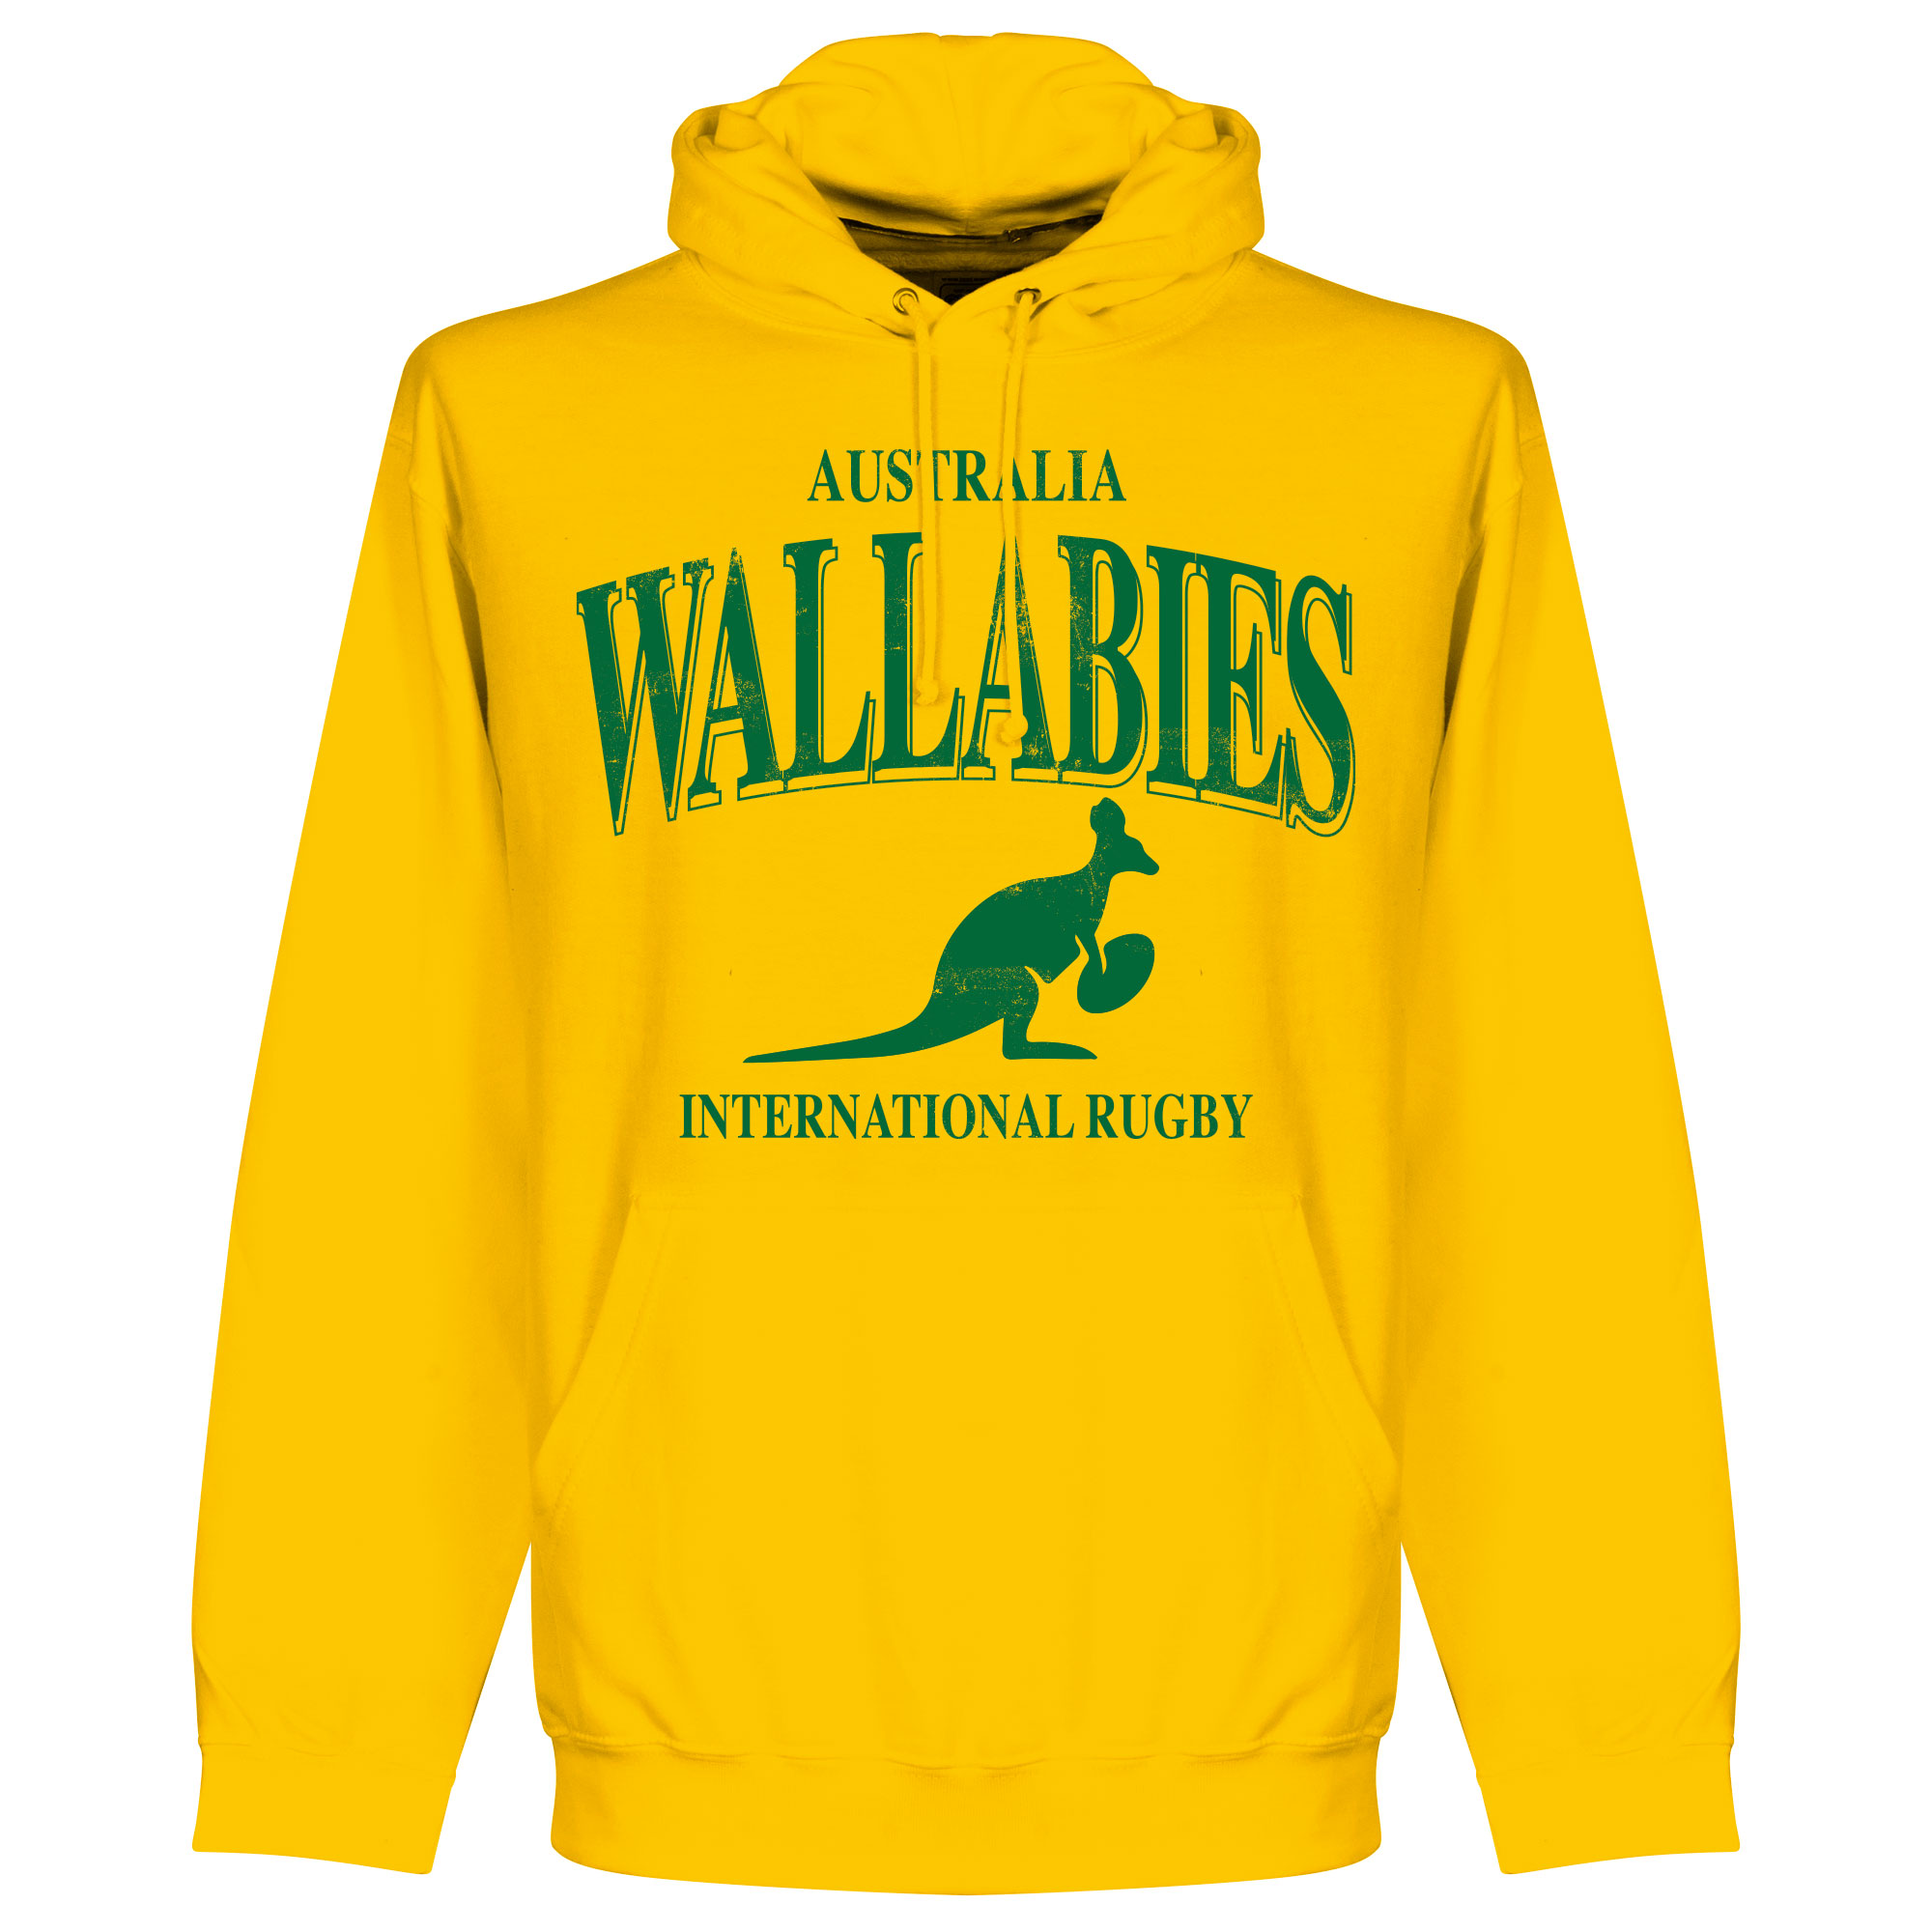 Australië Wallabies Rugby Hooded Sweater - Geel